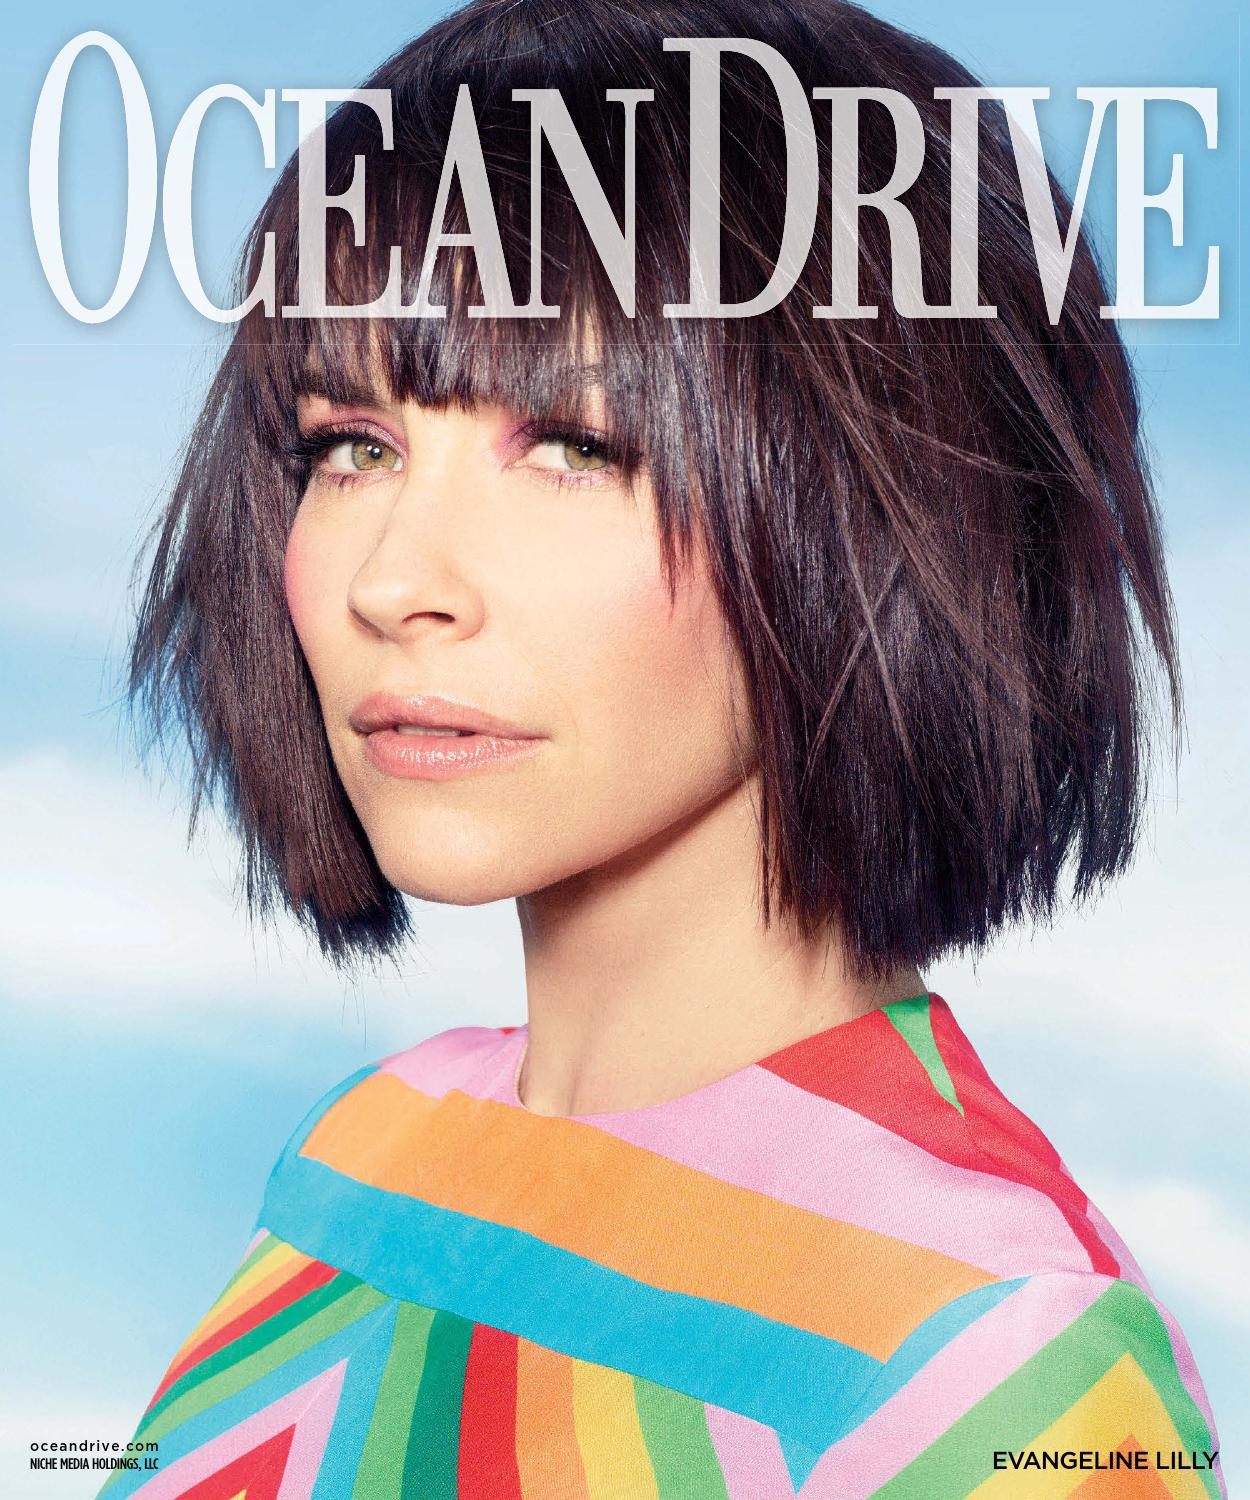 Ocean drive 2015 issue 1 january evangeline lilly by MODERN LUXURY - issuu 0ac8f8022d30